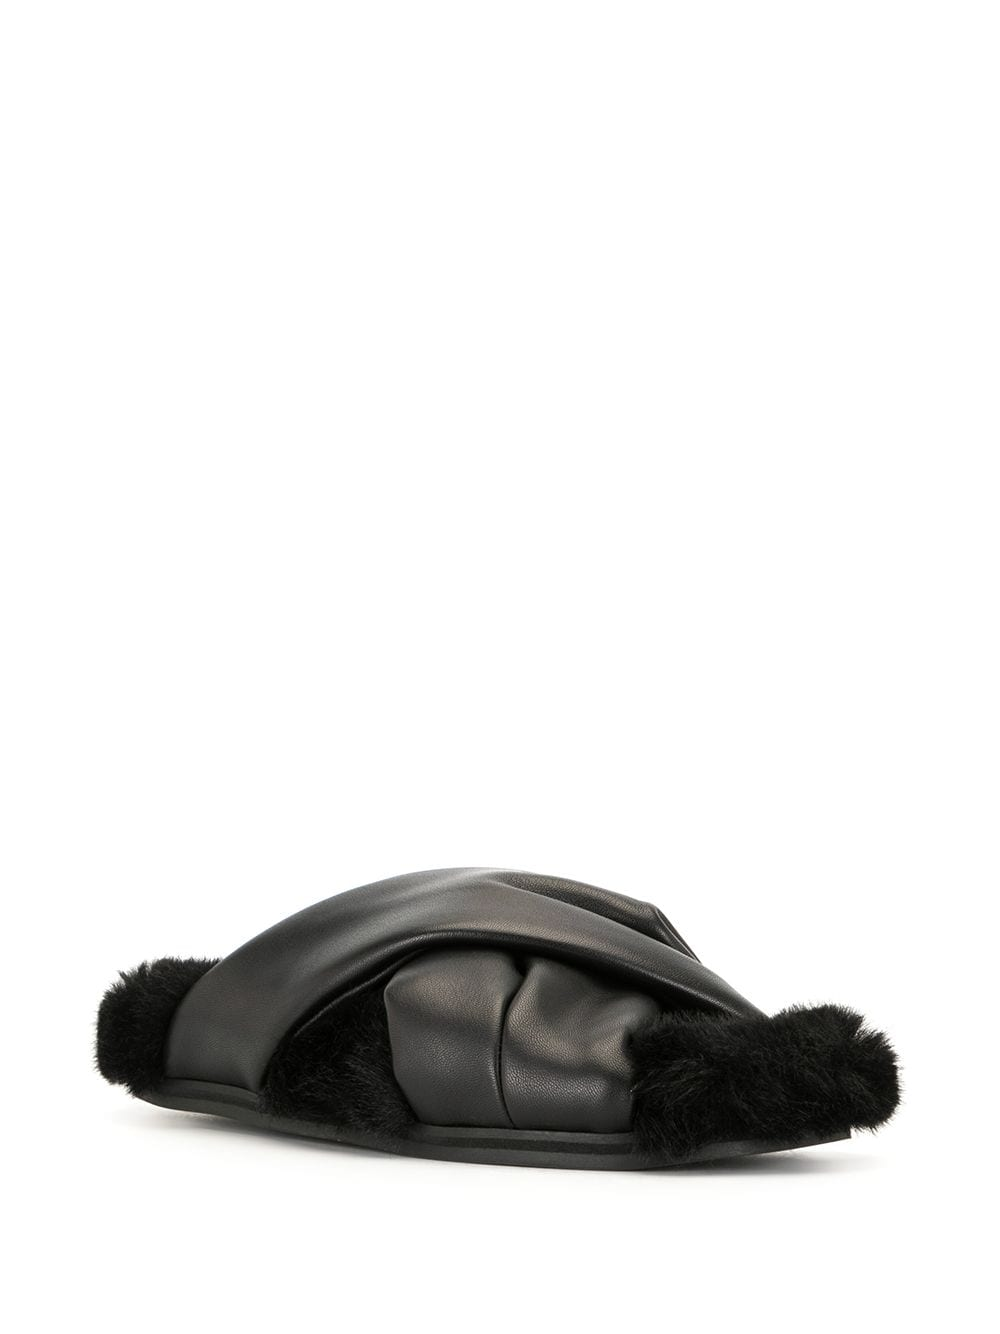 SIMONE ROCHA WOMEN 13MM CROSS STRAP SLIDE WITH FUR LINING